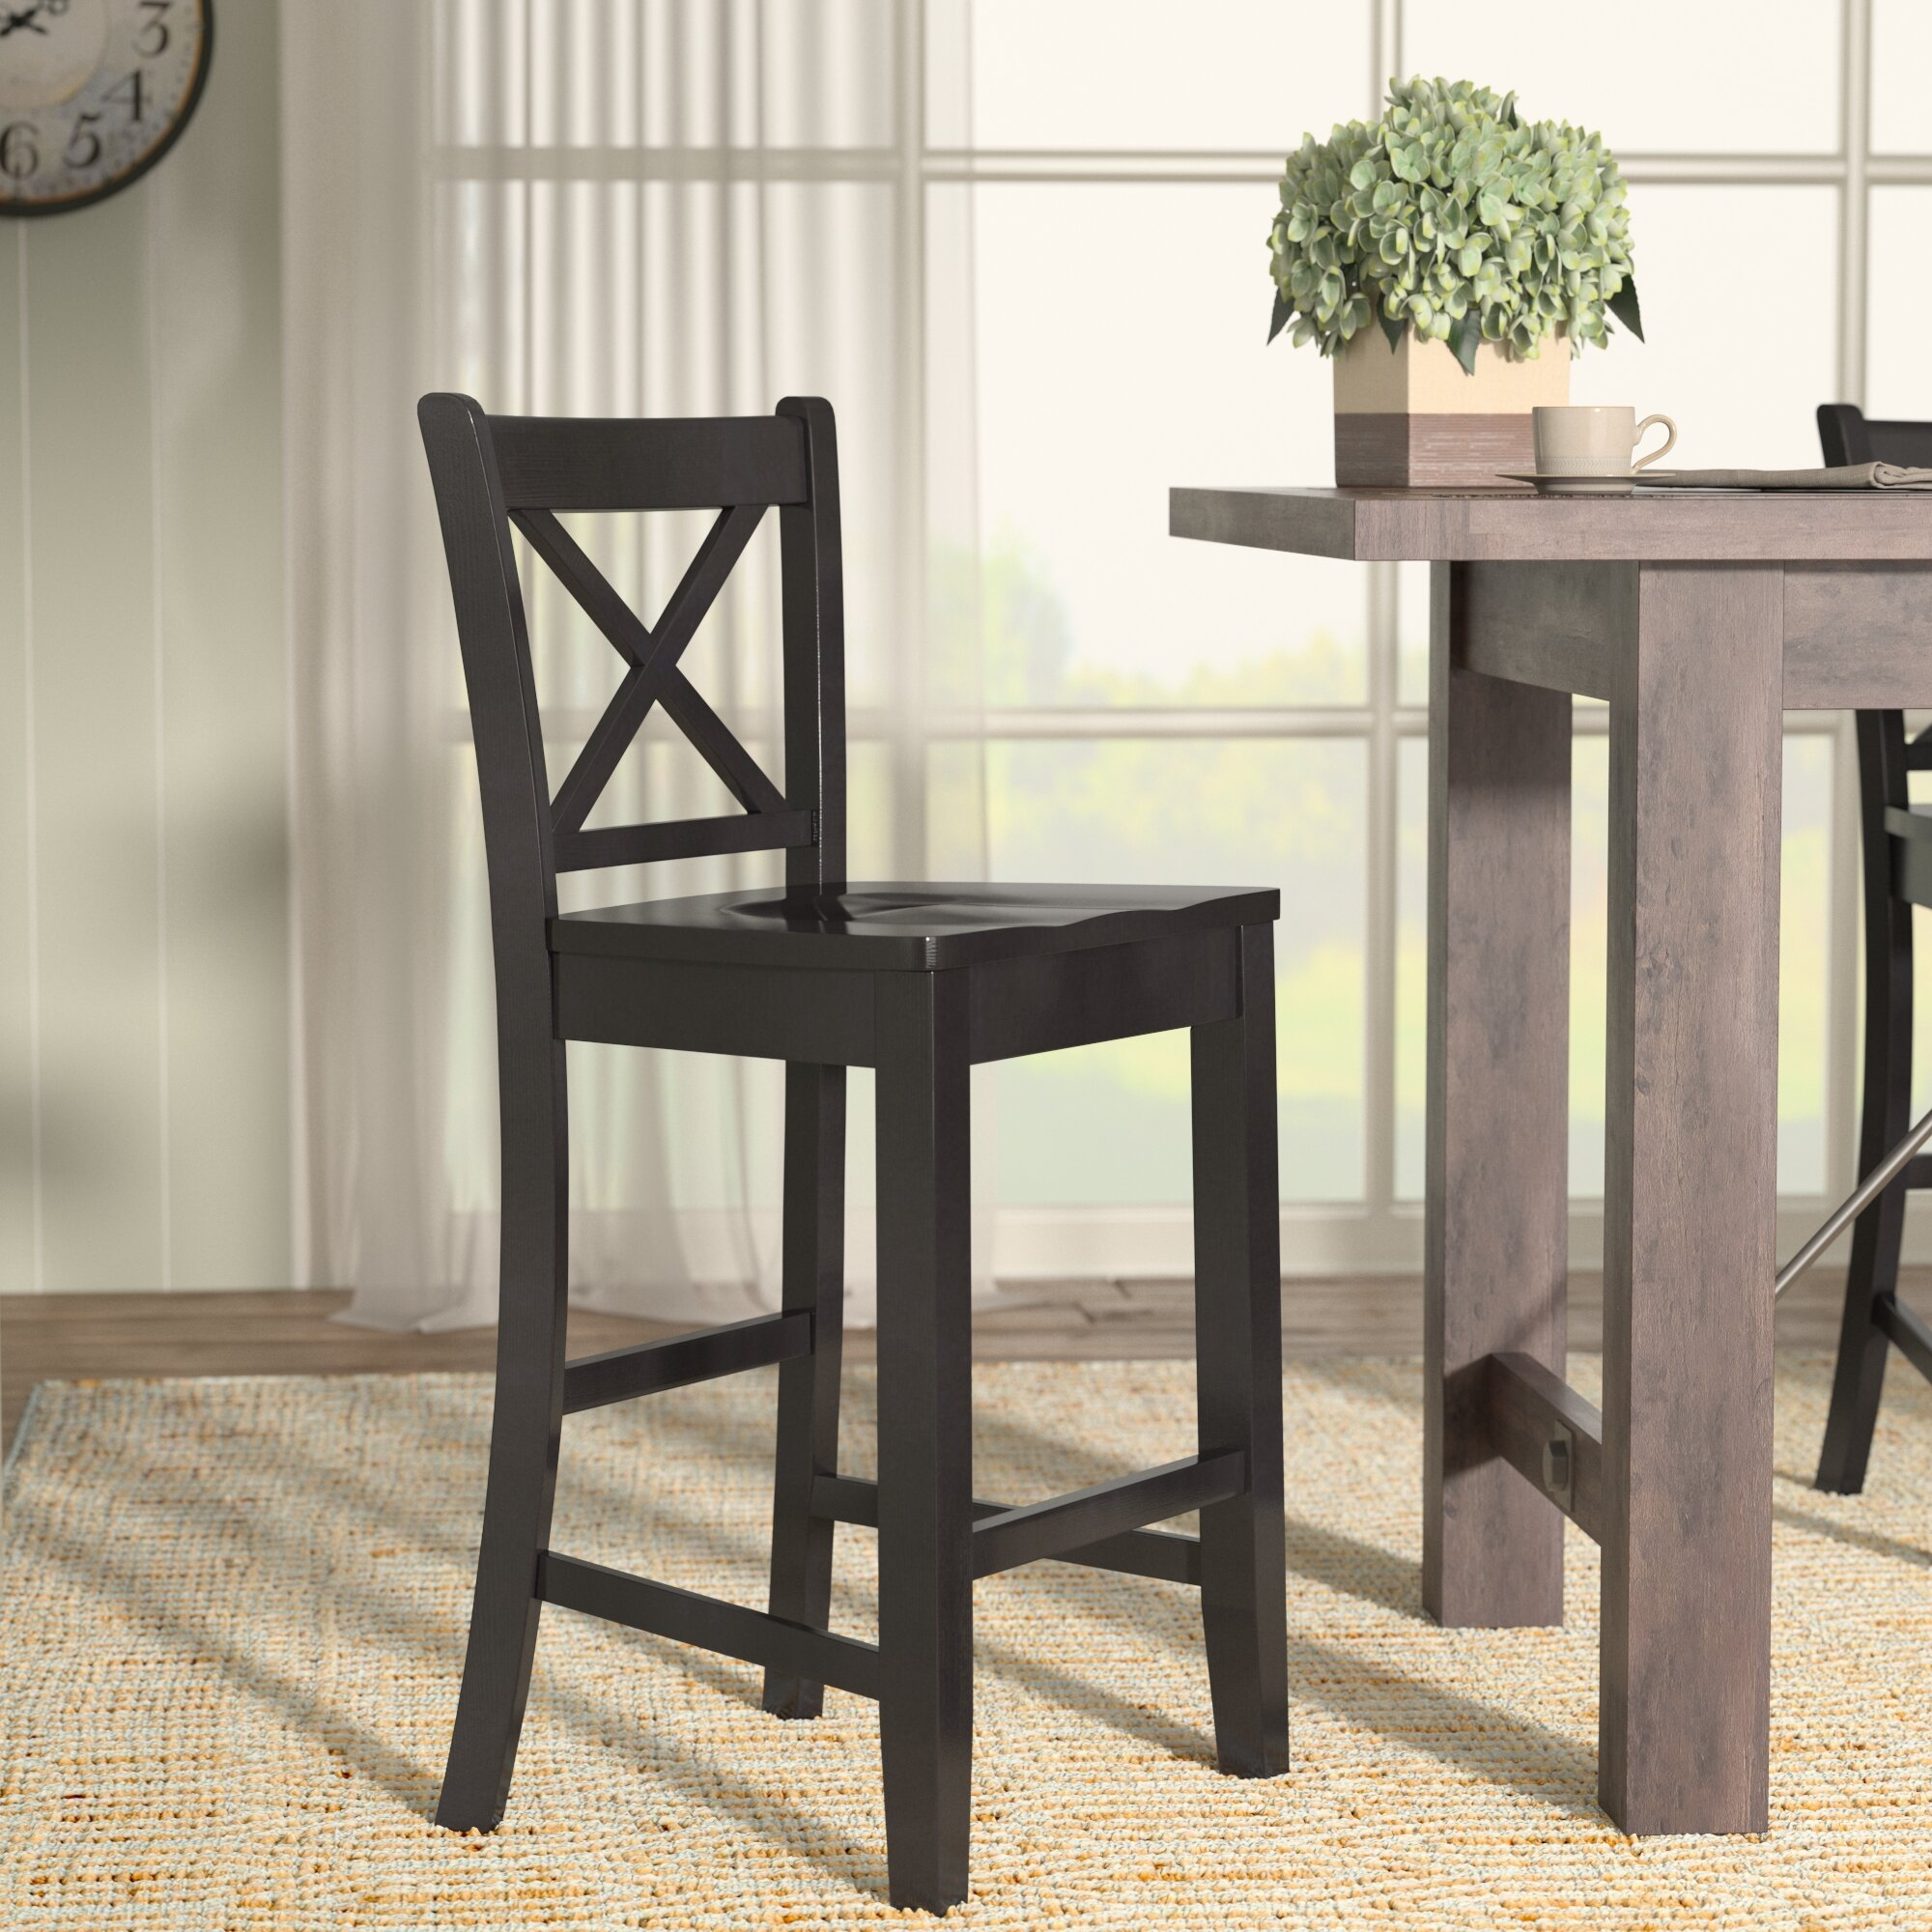 height rectangle stool backless backs with counter leather chairs bar target for island kitchen back furniture tufted stools stoo breakfast gas high barstools best cheap ikea wooden